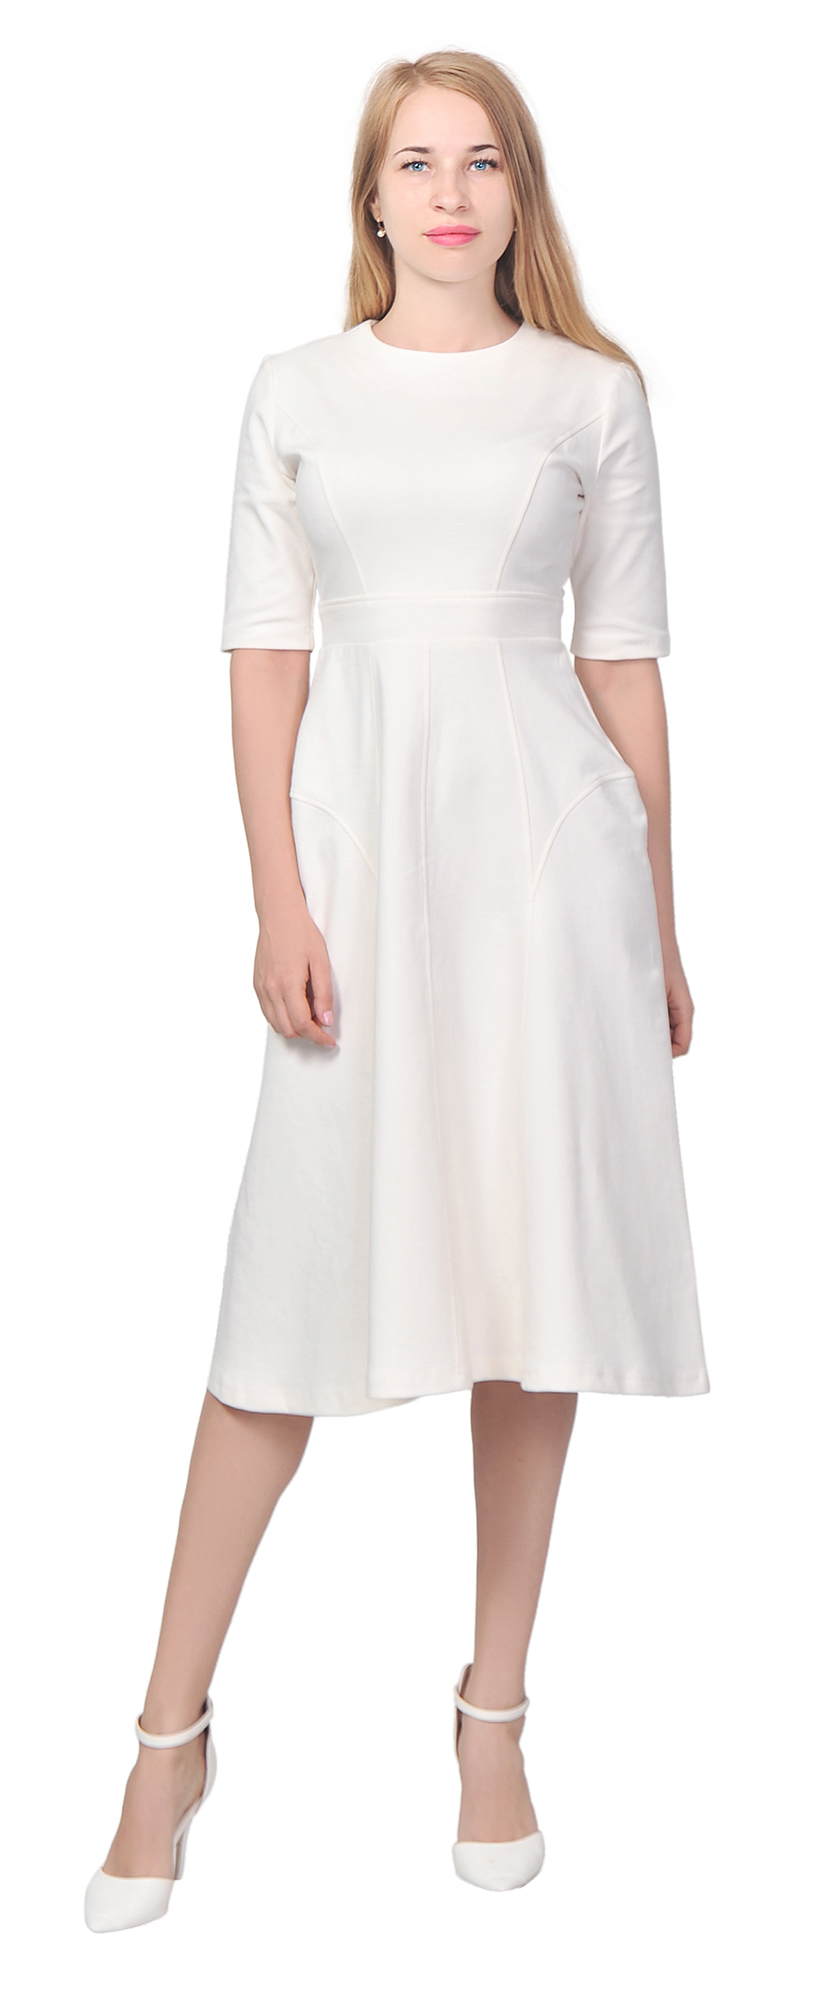 Browse David's Bridal stunning collection of tea length dresses with sleeves or strapless, all in black, red or other colors at an affordable price today!